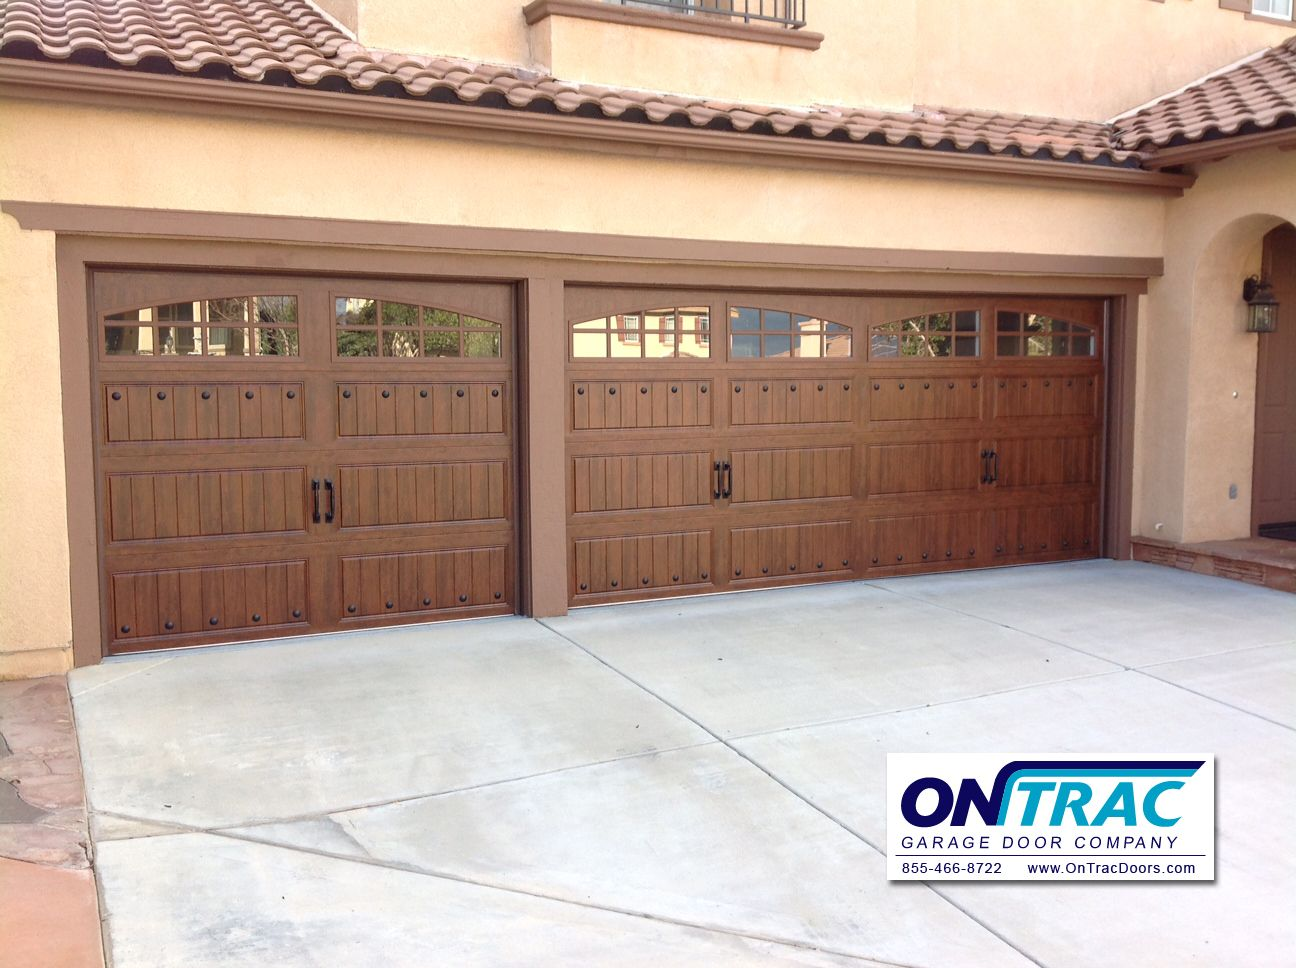 Steel Walnut Wood Grain Garage Door With Decorative Hardware (handles U0026  Clavos) And Windows